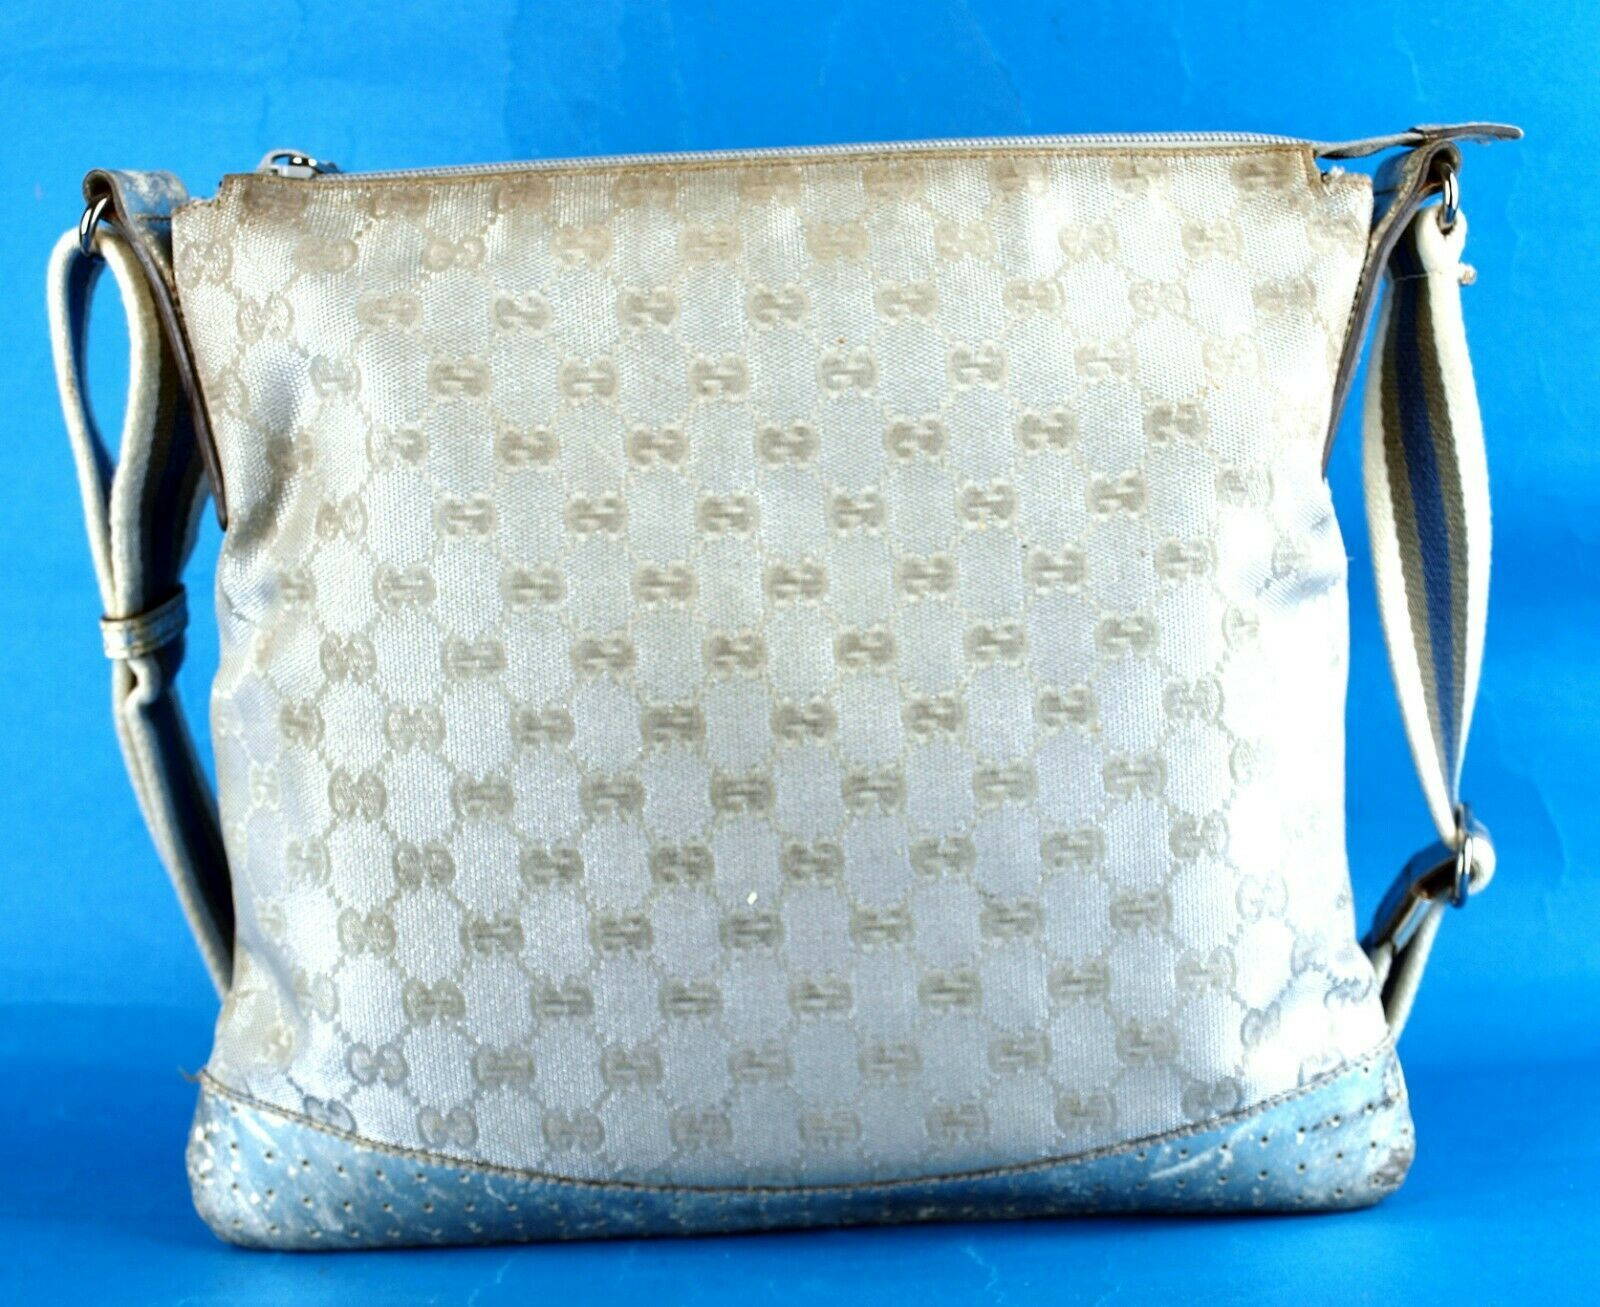 Auth GUCCI GG Silver Nylon Canvas & Leather Shoulder Bag Purse Italy 145857 2123